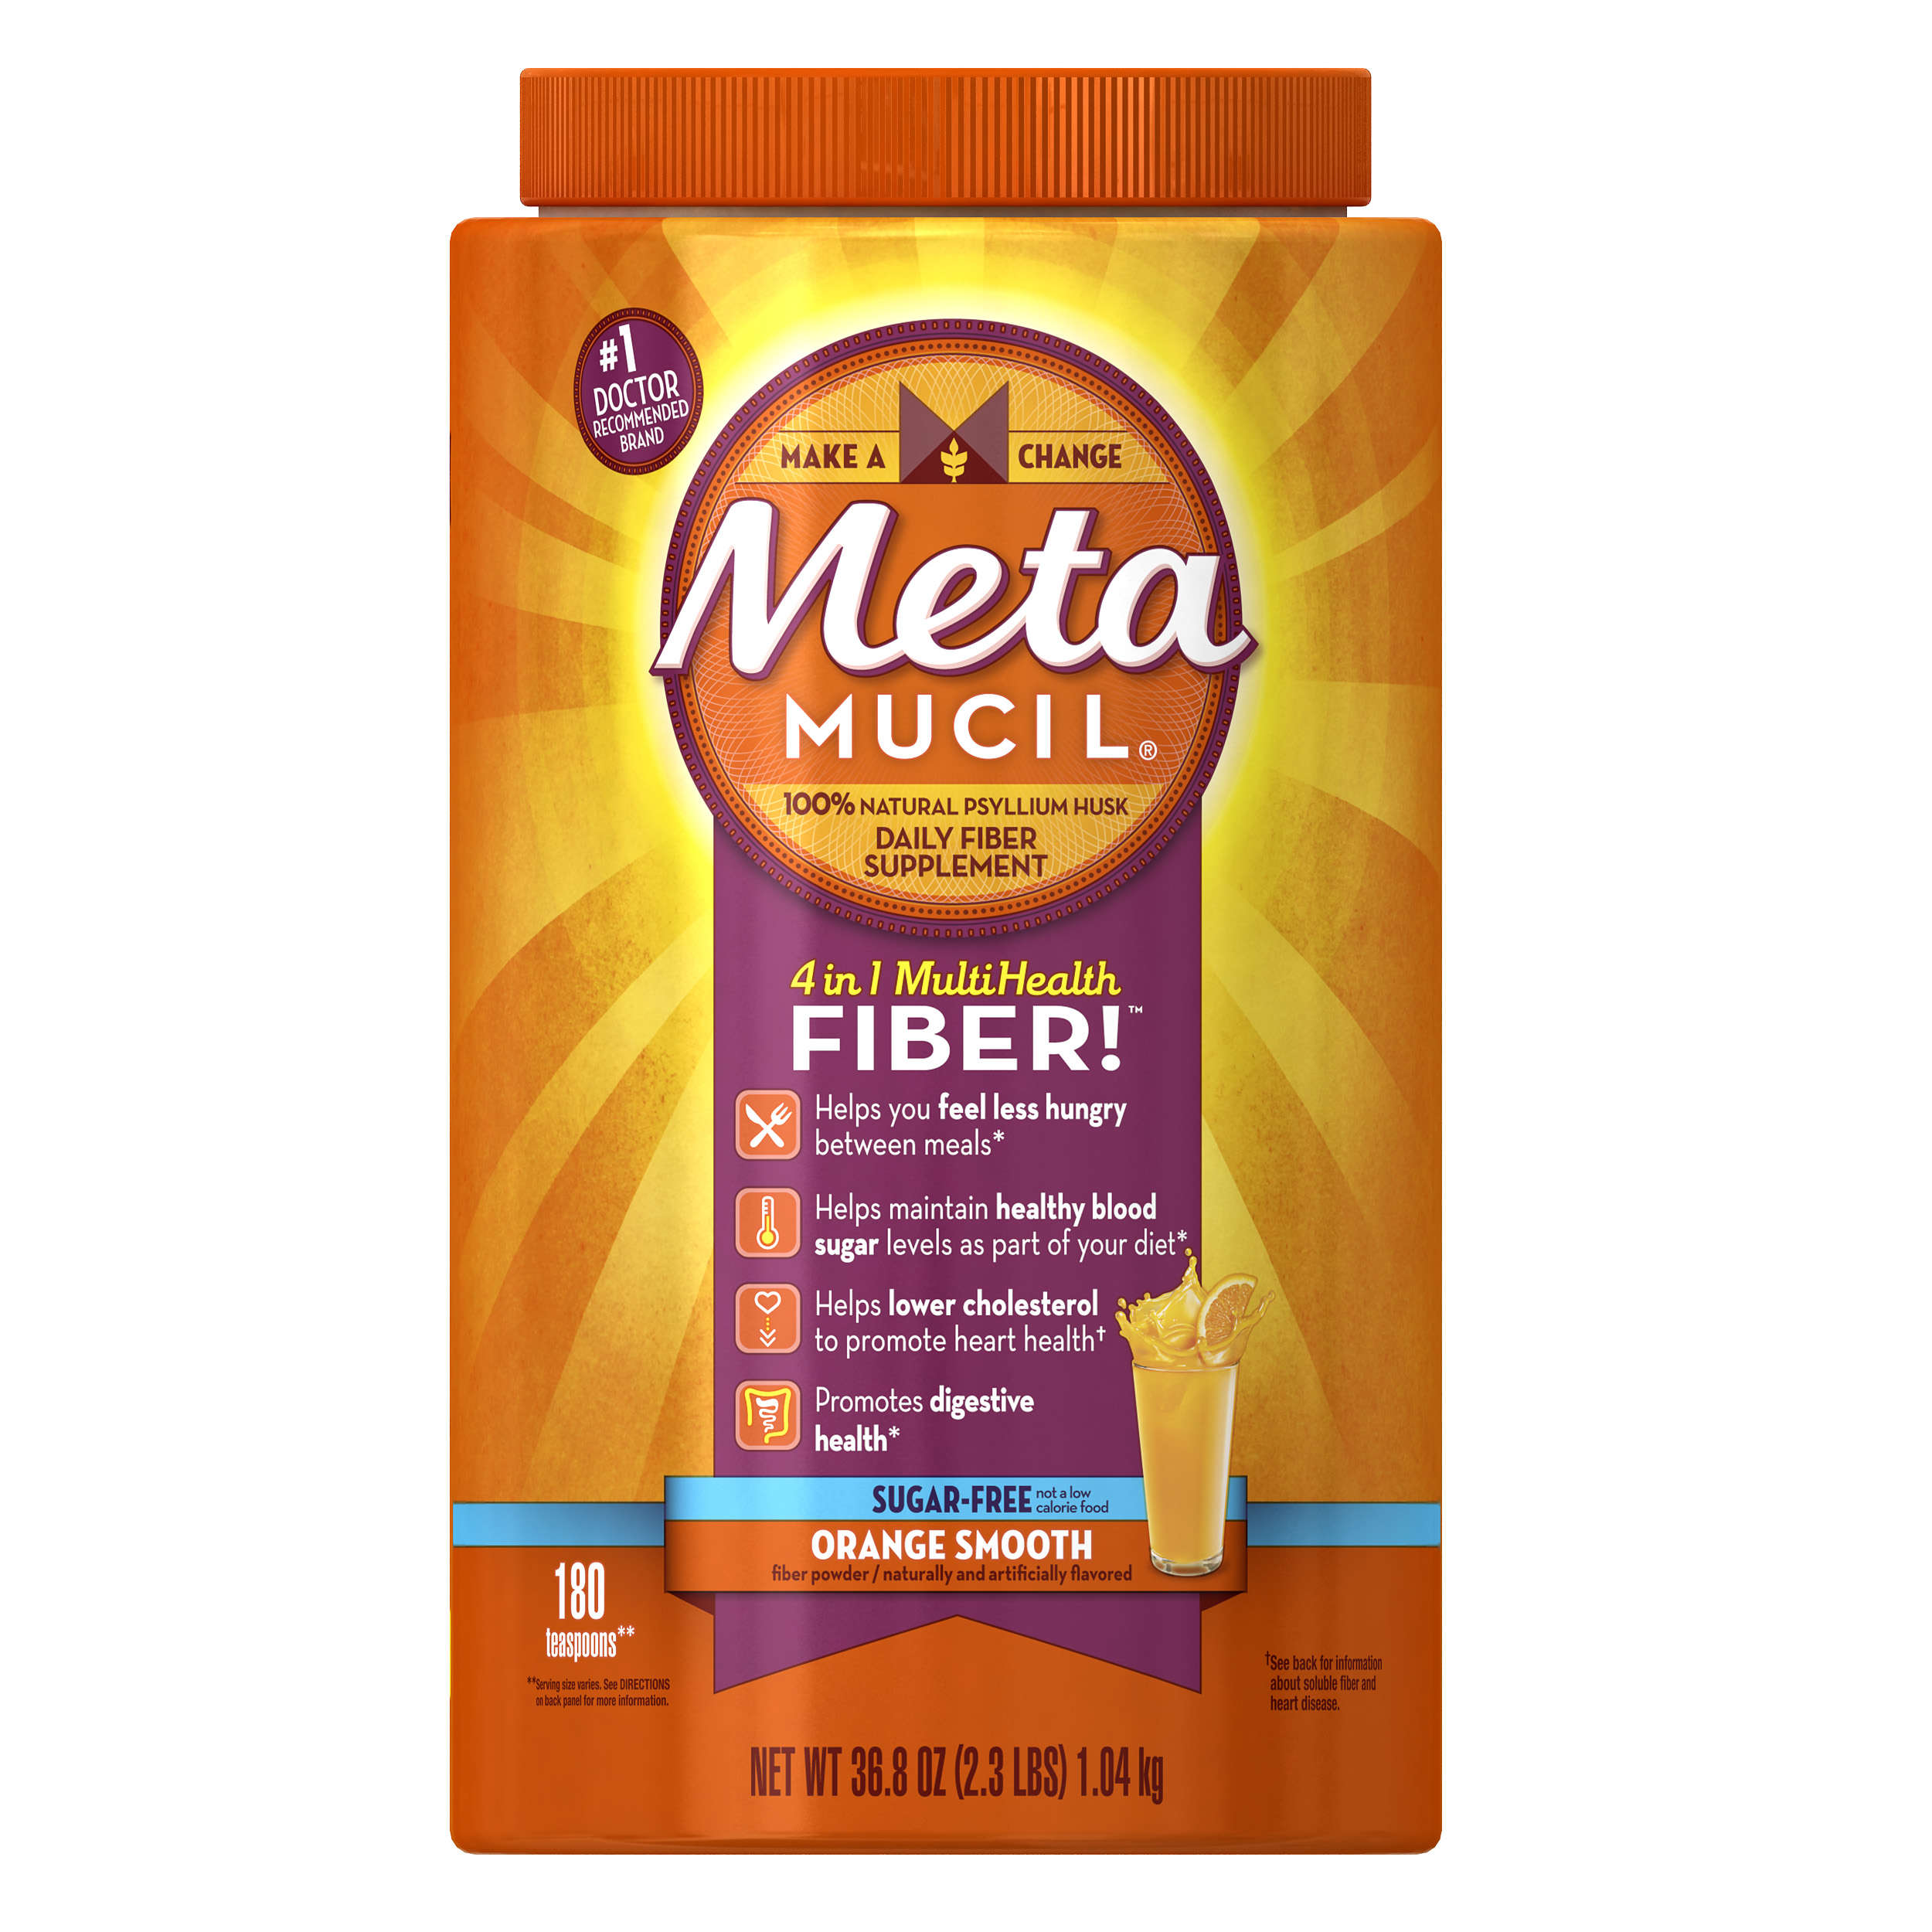 Metamucil Psyllium Fiber Supplement by Meta, Orange Smooth Sugar Free Powder, 36.8 oz, 180 doses